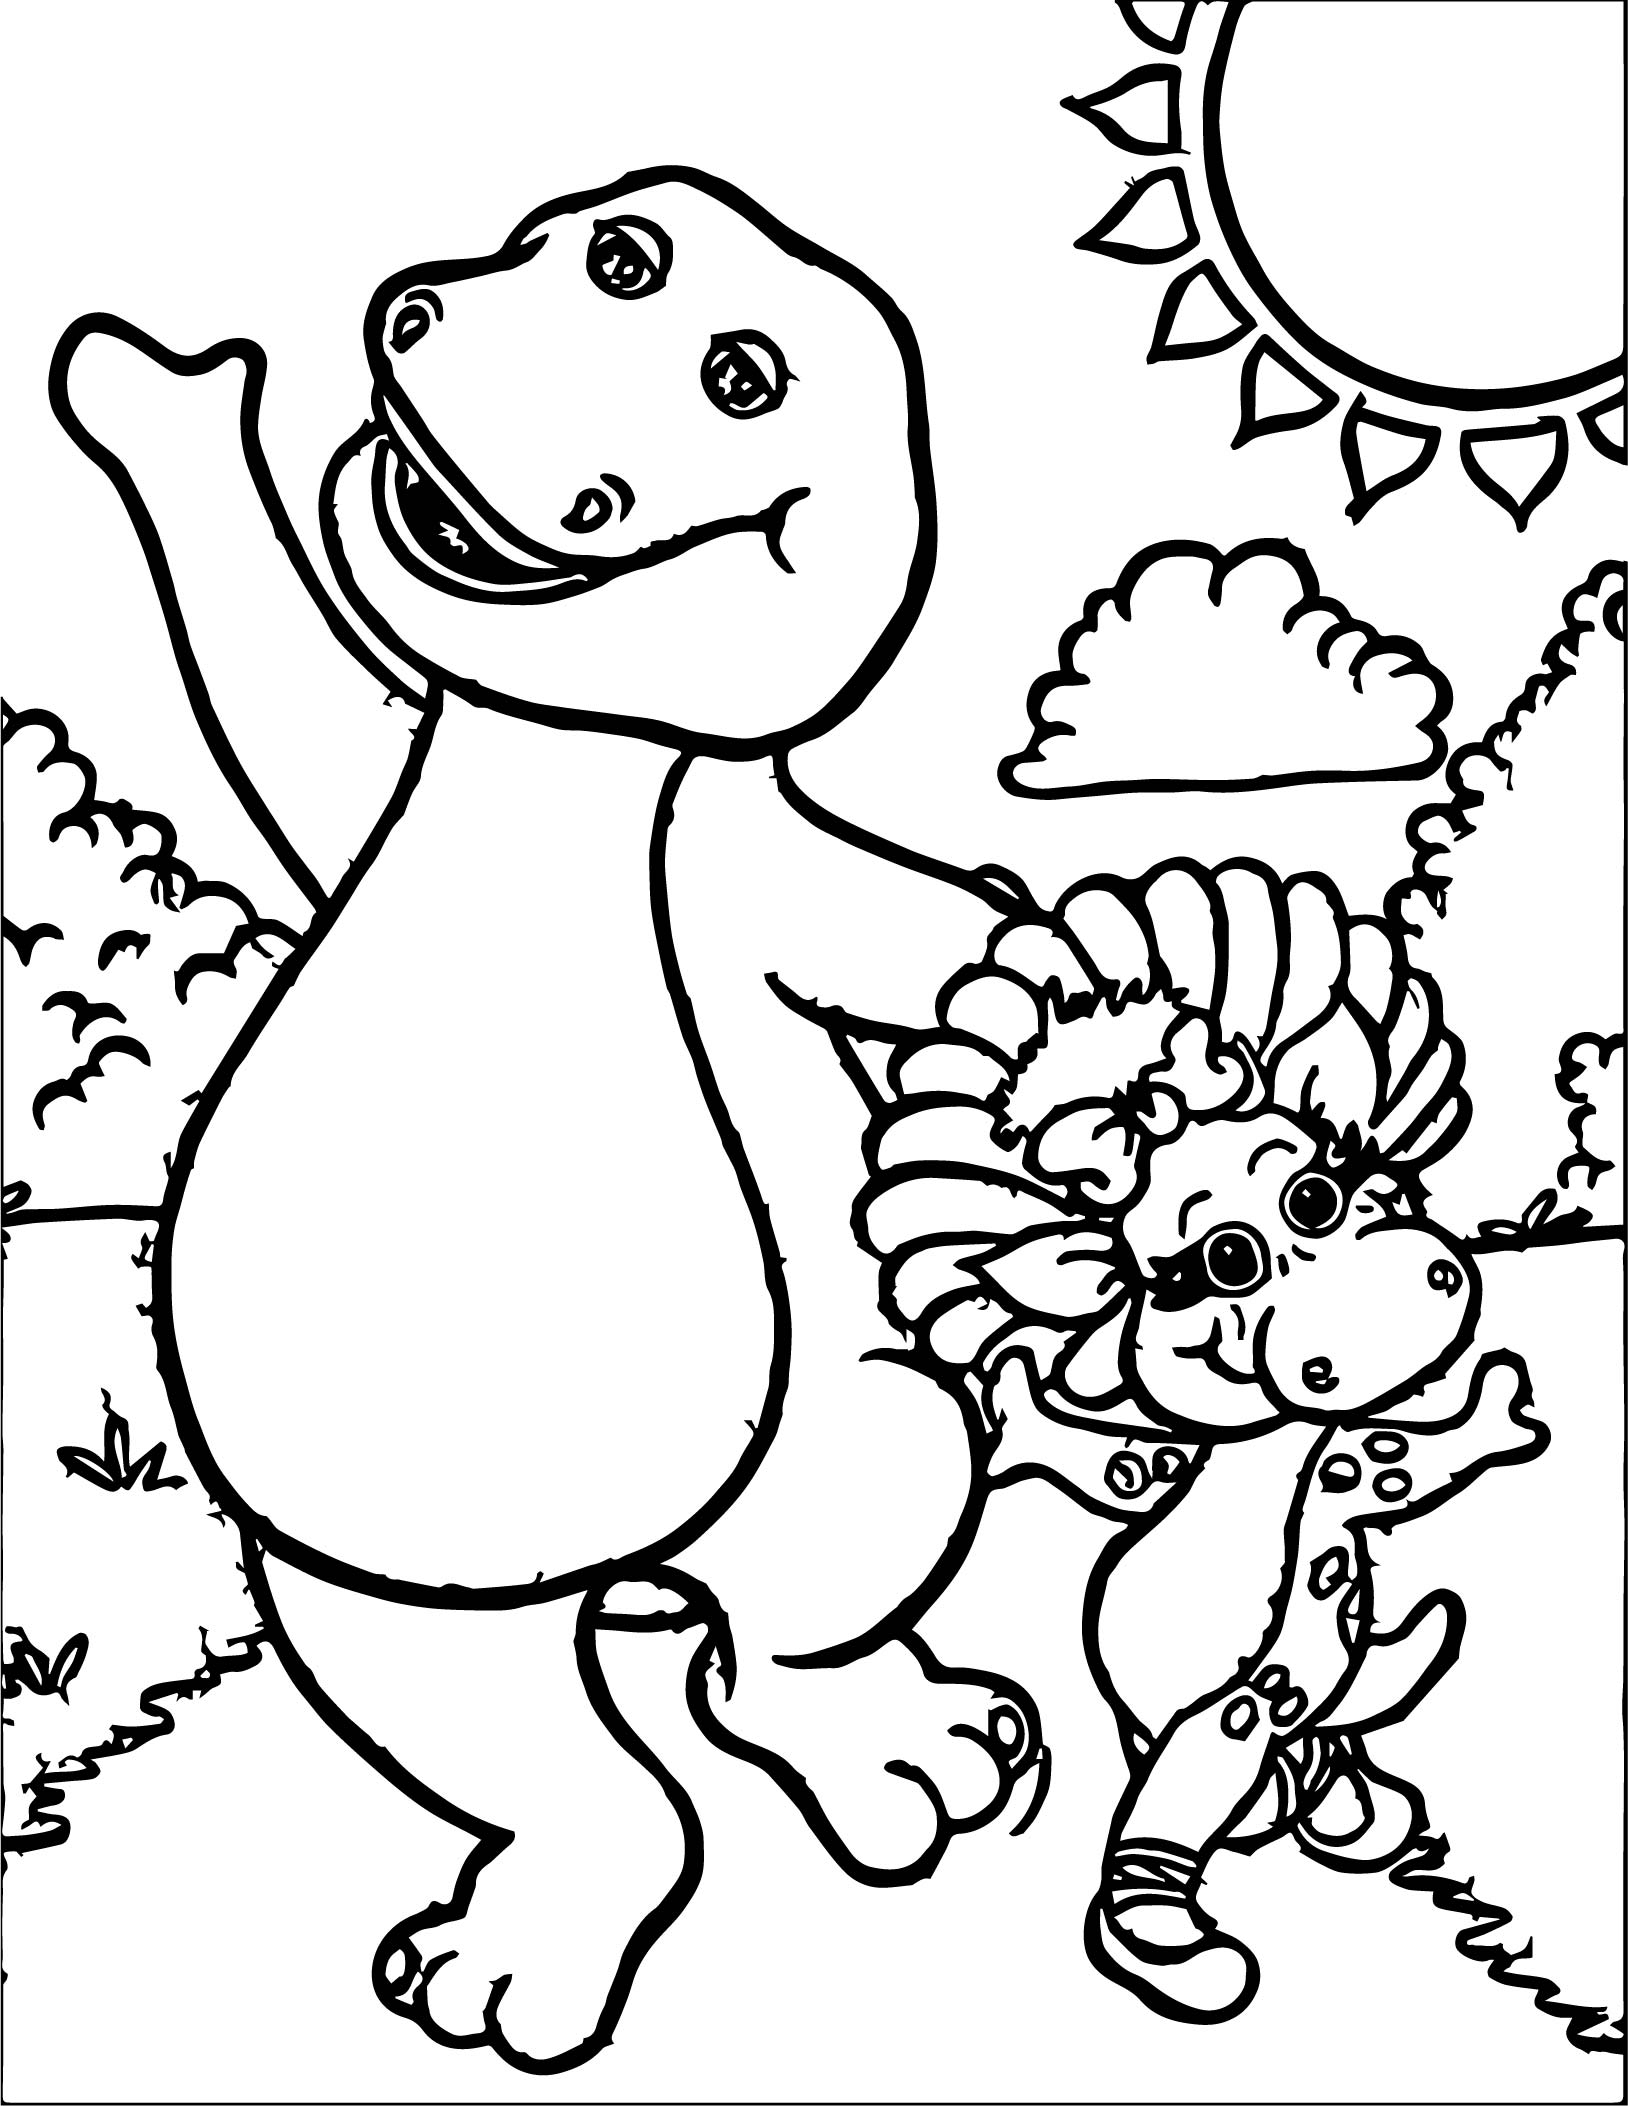 Barney and baby bop have fun together coloring page for Baby bop coloring pages